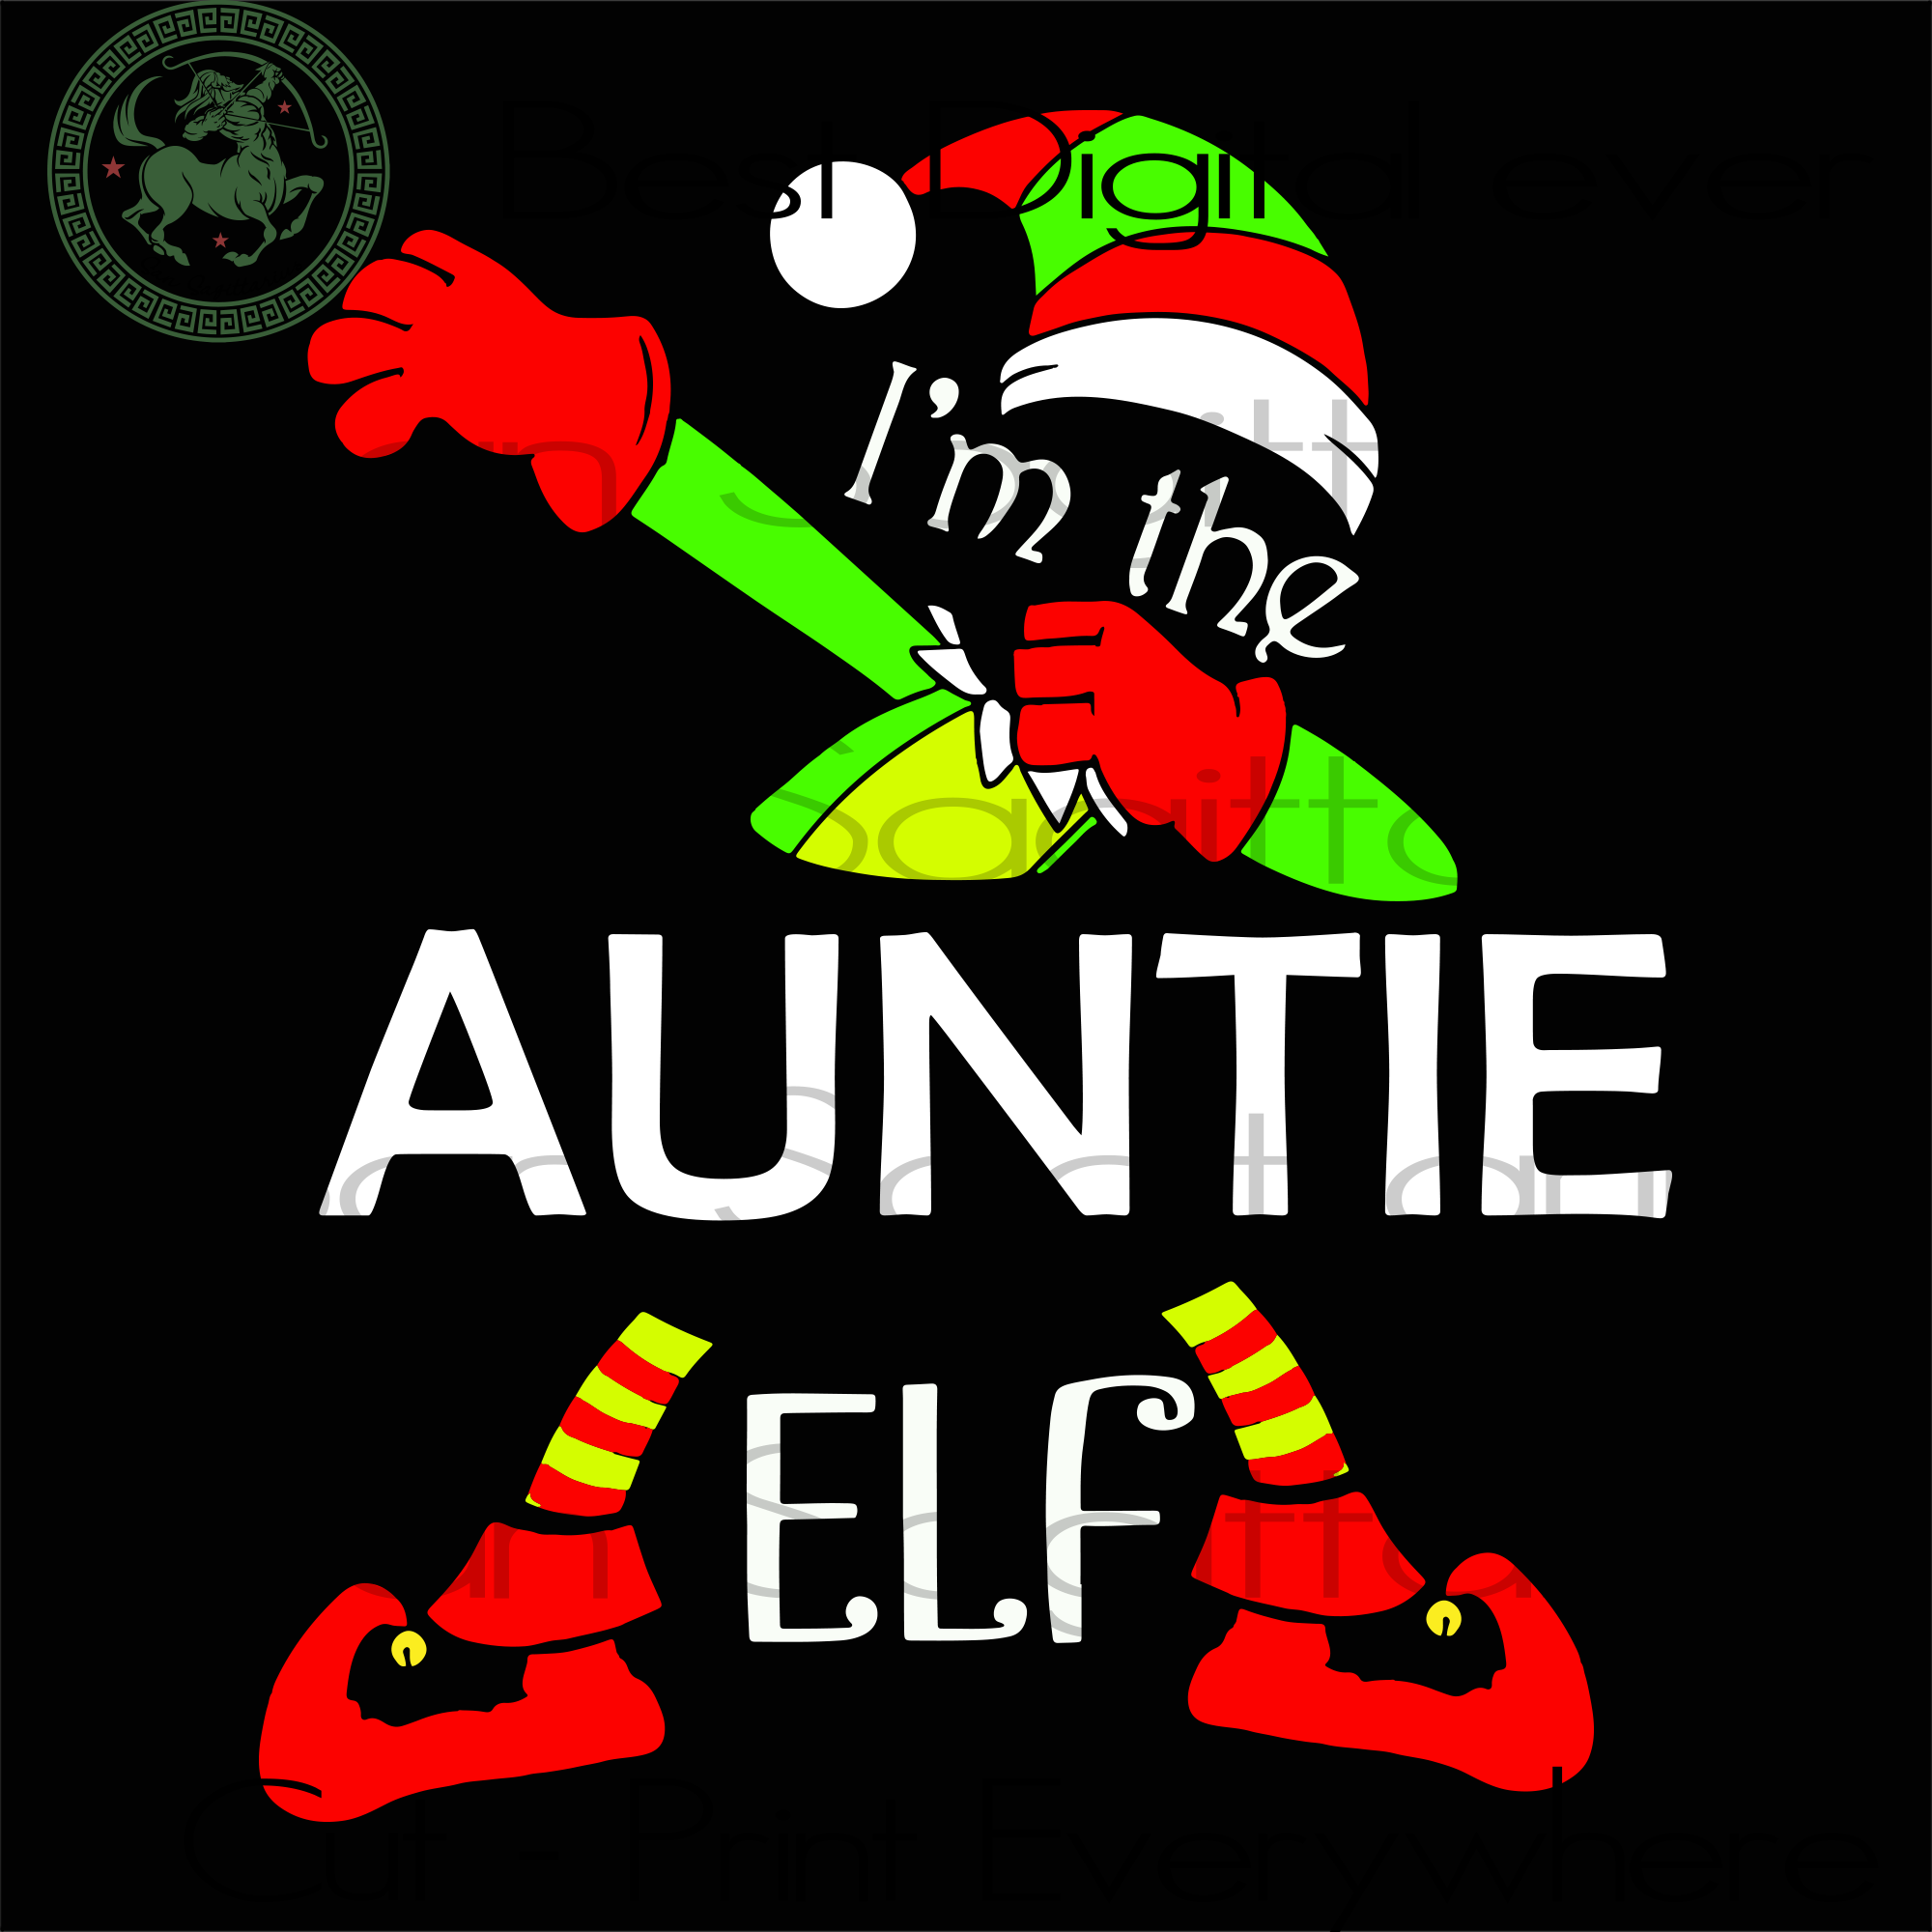 I'm The Auntie ELF, Christmas Svg, Christmas Gifts, Merry Christmas, Christmas Holiday, Christmas Party, Funny Christmas, Xmas Gift, Christmas Gift Ideas, Merry Christmas Svg, Holidays, Chris